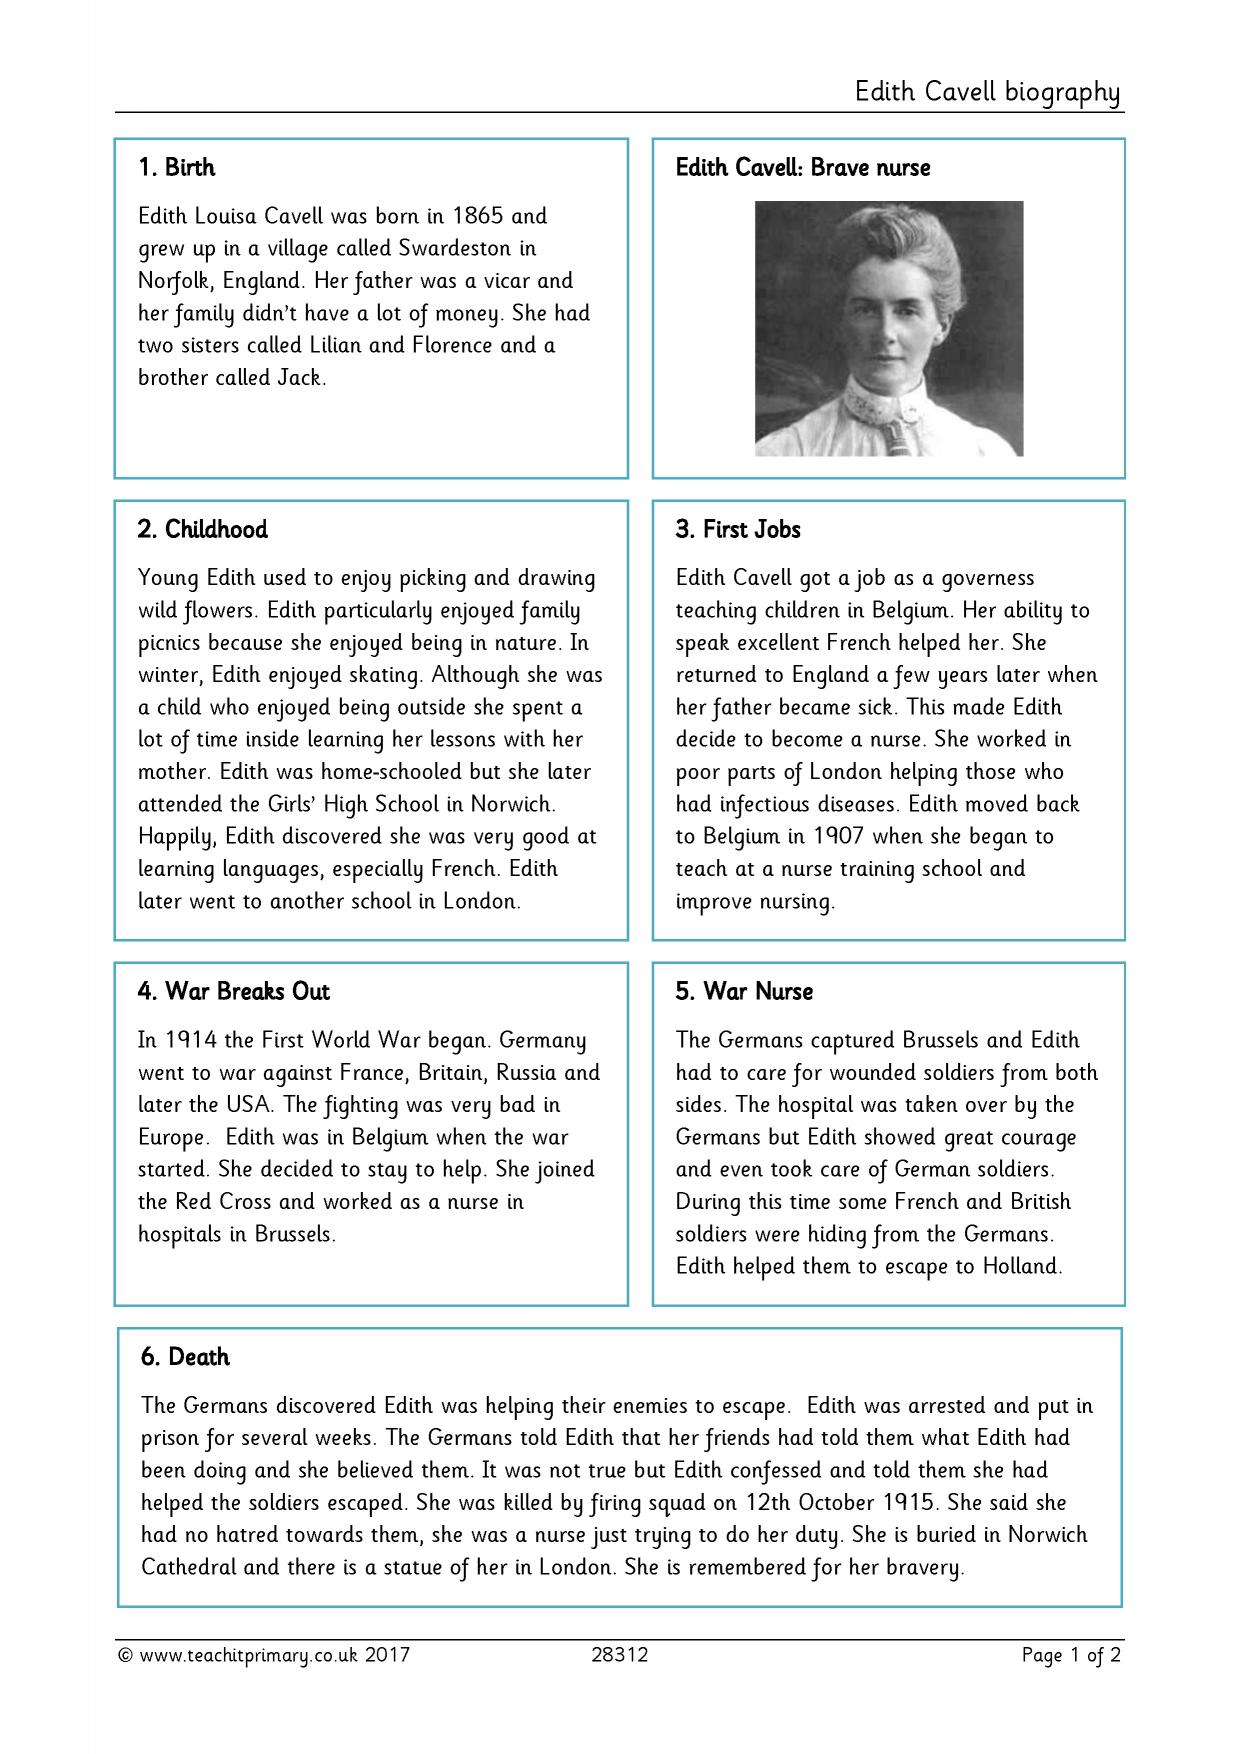 Roald Dahl Biography Ks2 Planning Biography Ks2 Word Bank